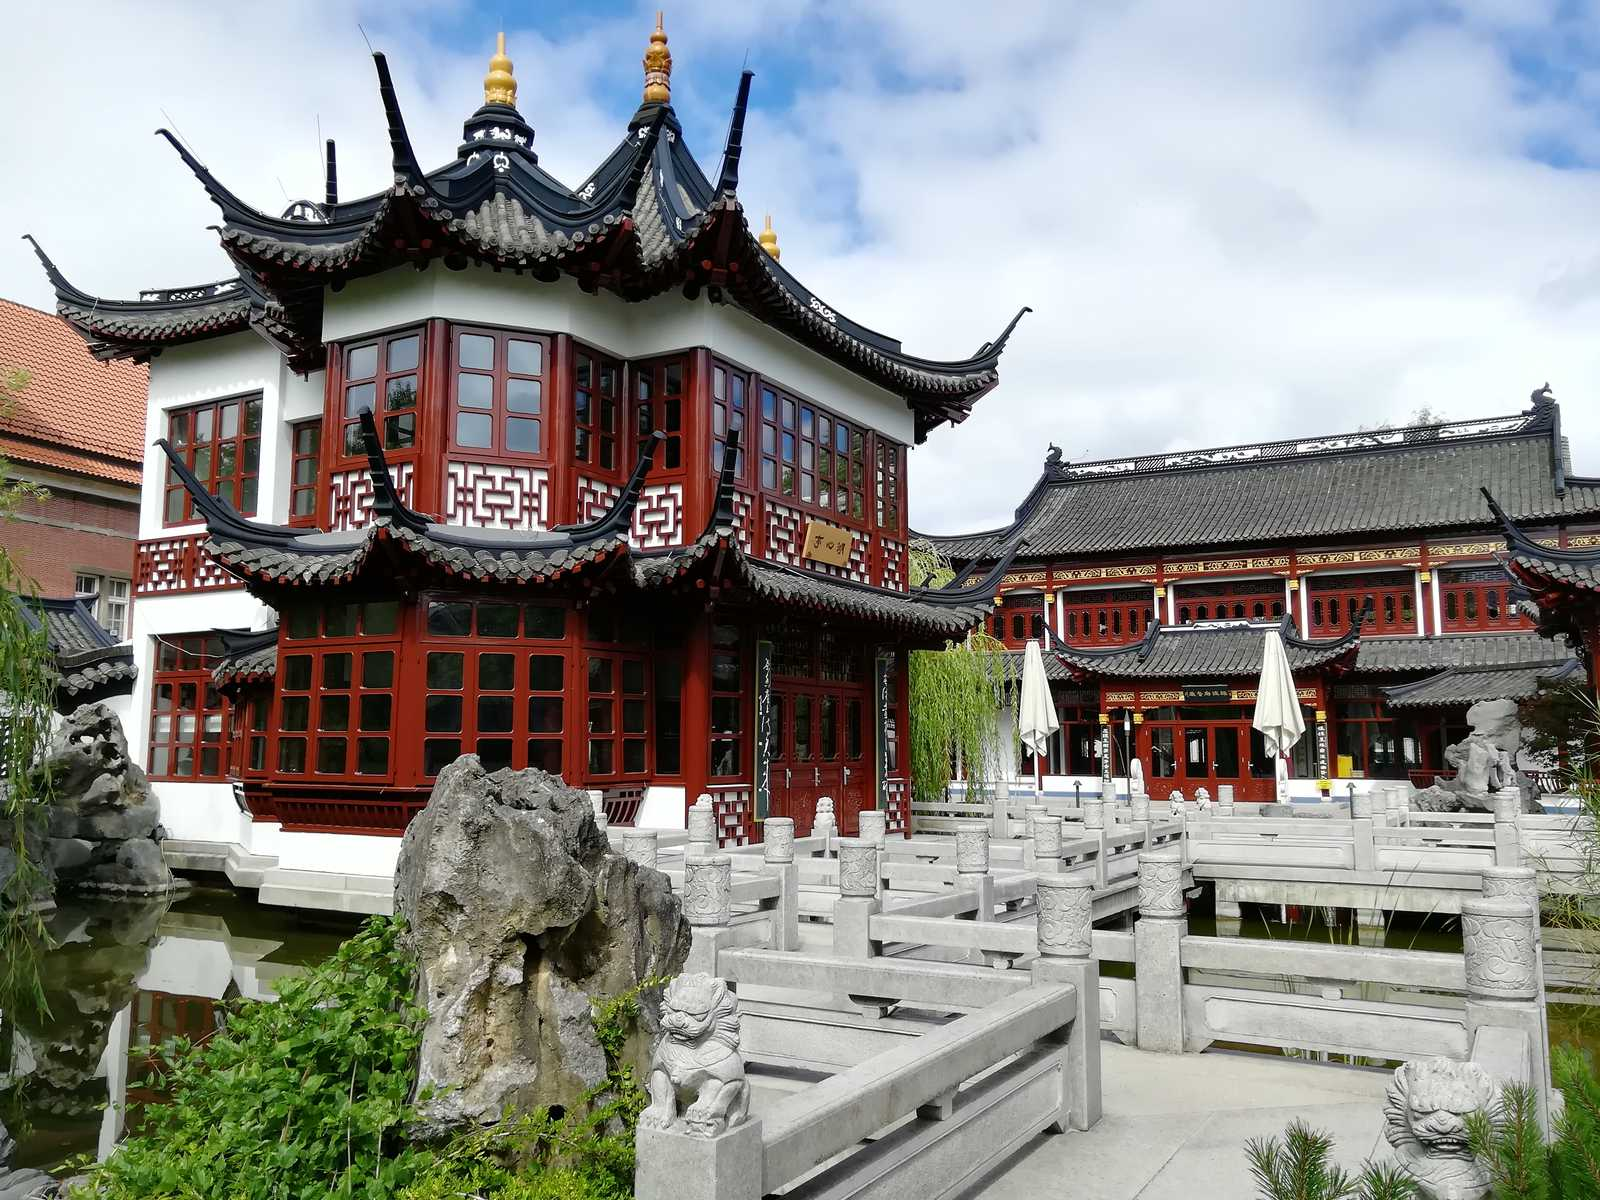 The image shows a chinese pagode building in the german city of Hamburg.